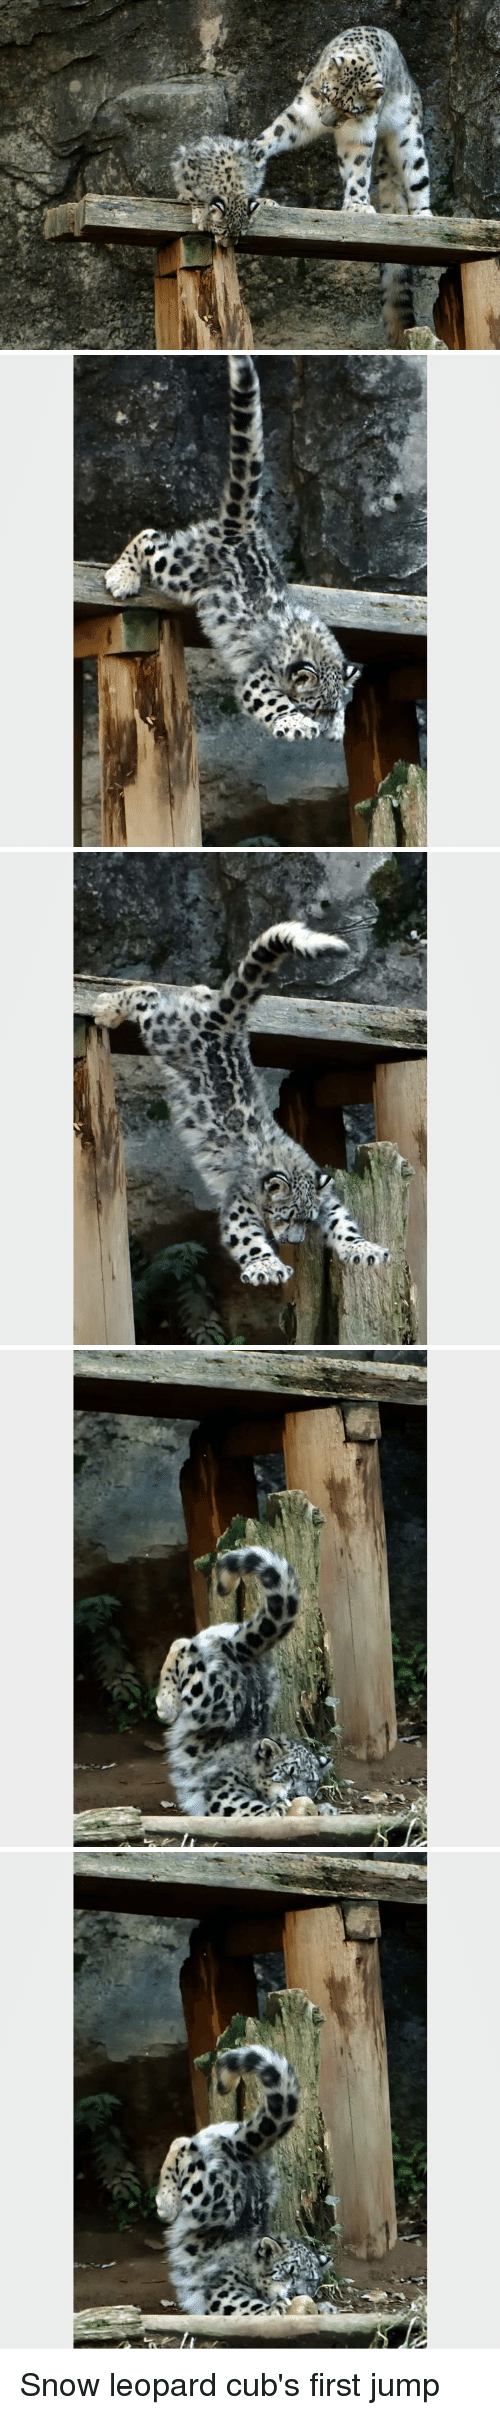 Cubs, Snow, and Leopard: Snow leopard cub's first jump